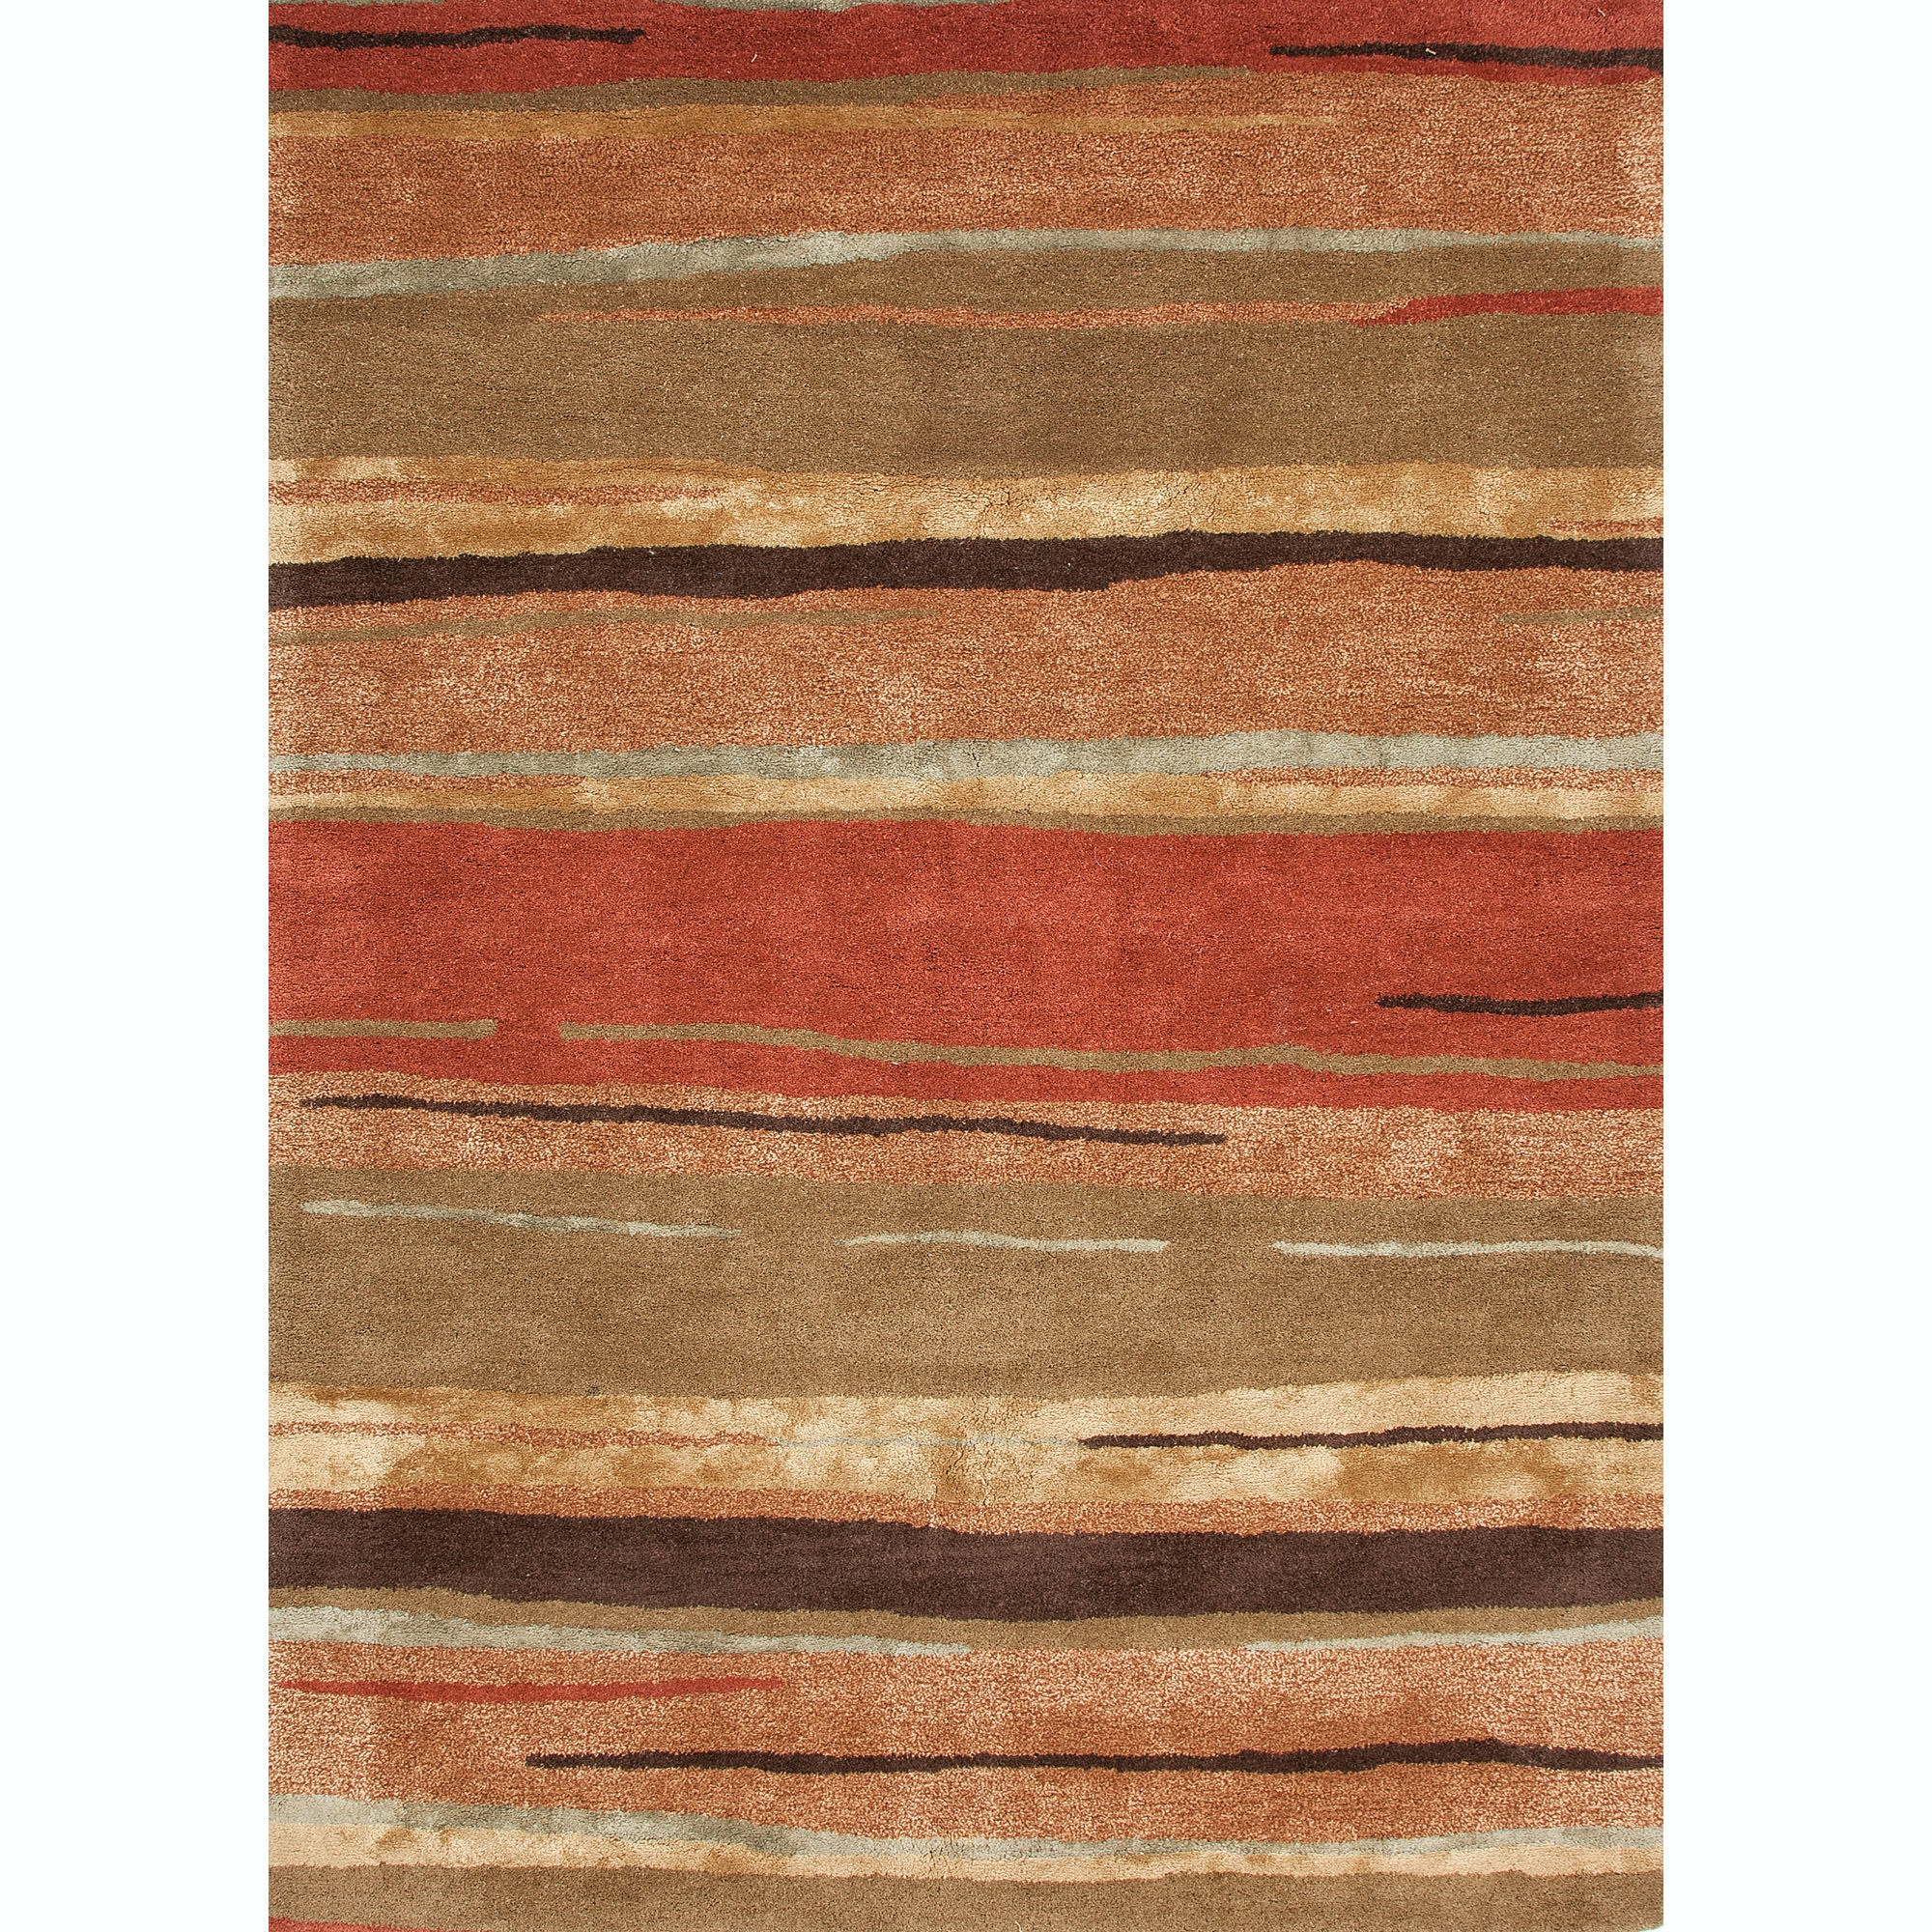 Jaipur Rugs Floor Coverings Hand Tufted Abstract Pattern Wool Art